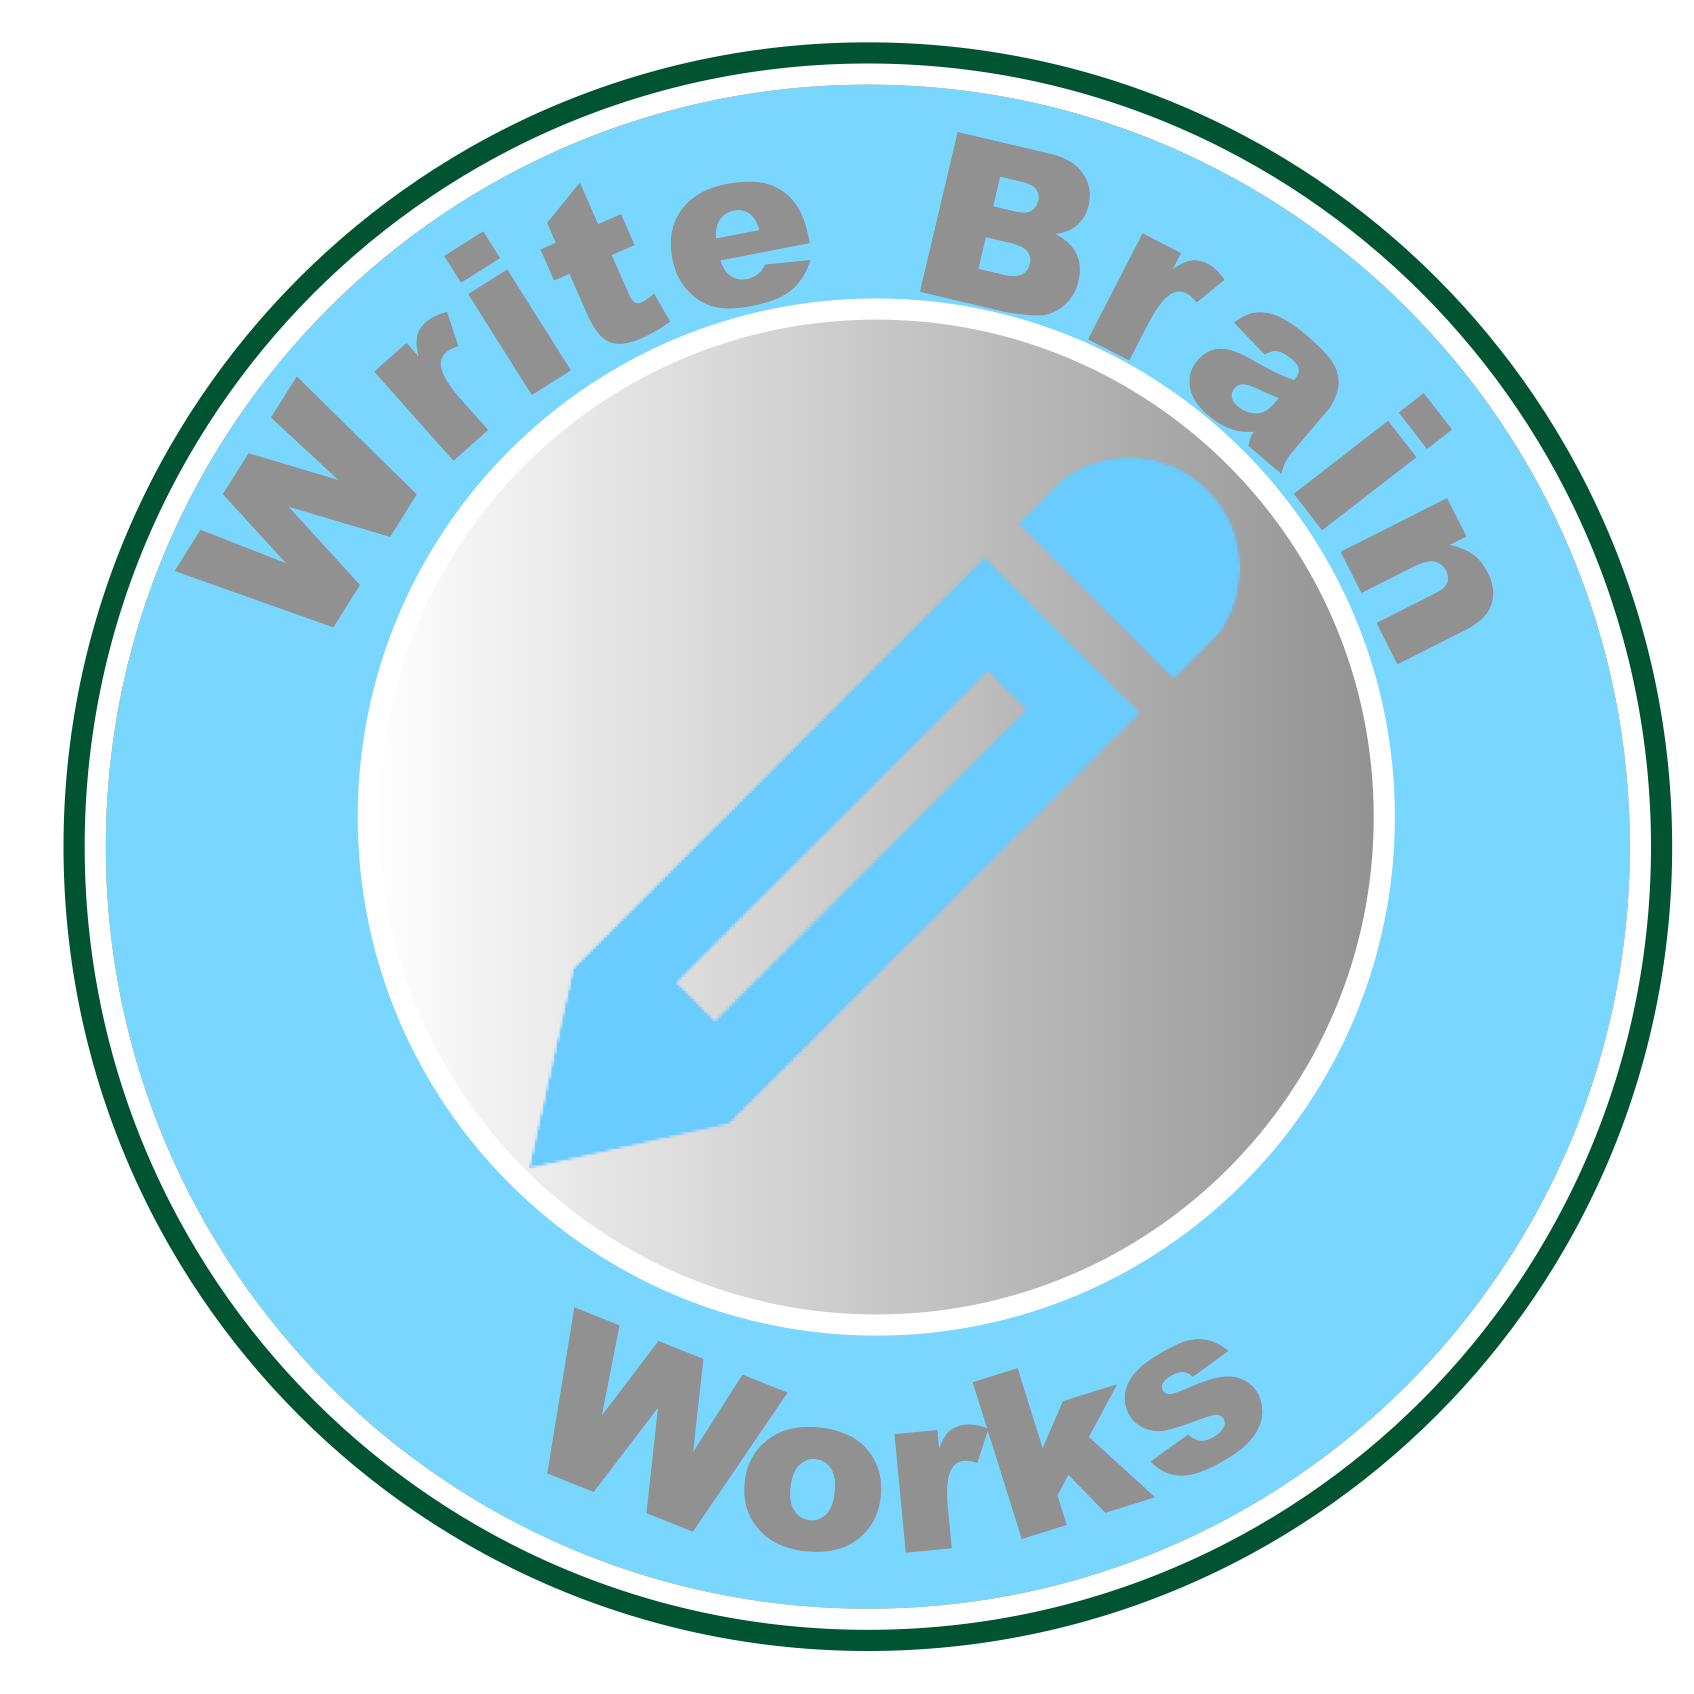 Taste clipart action word. Write brain works everything